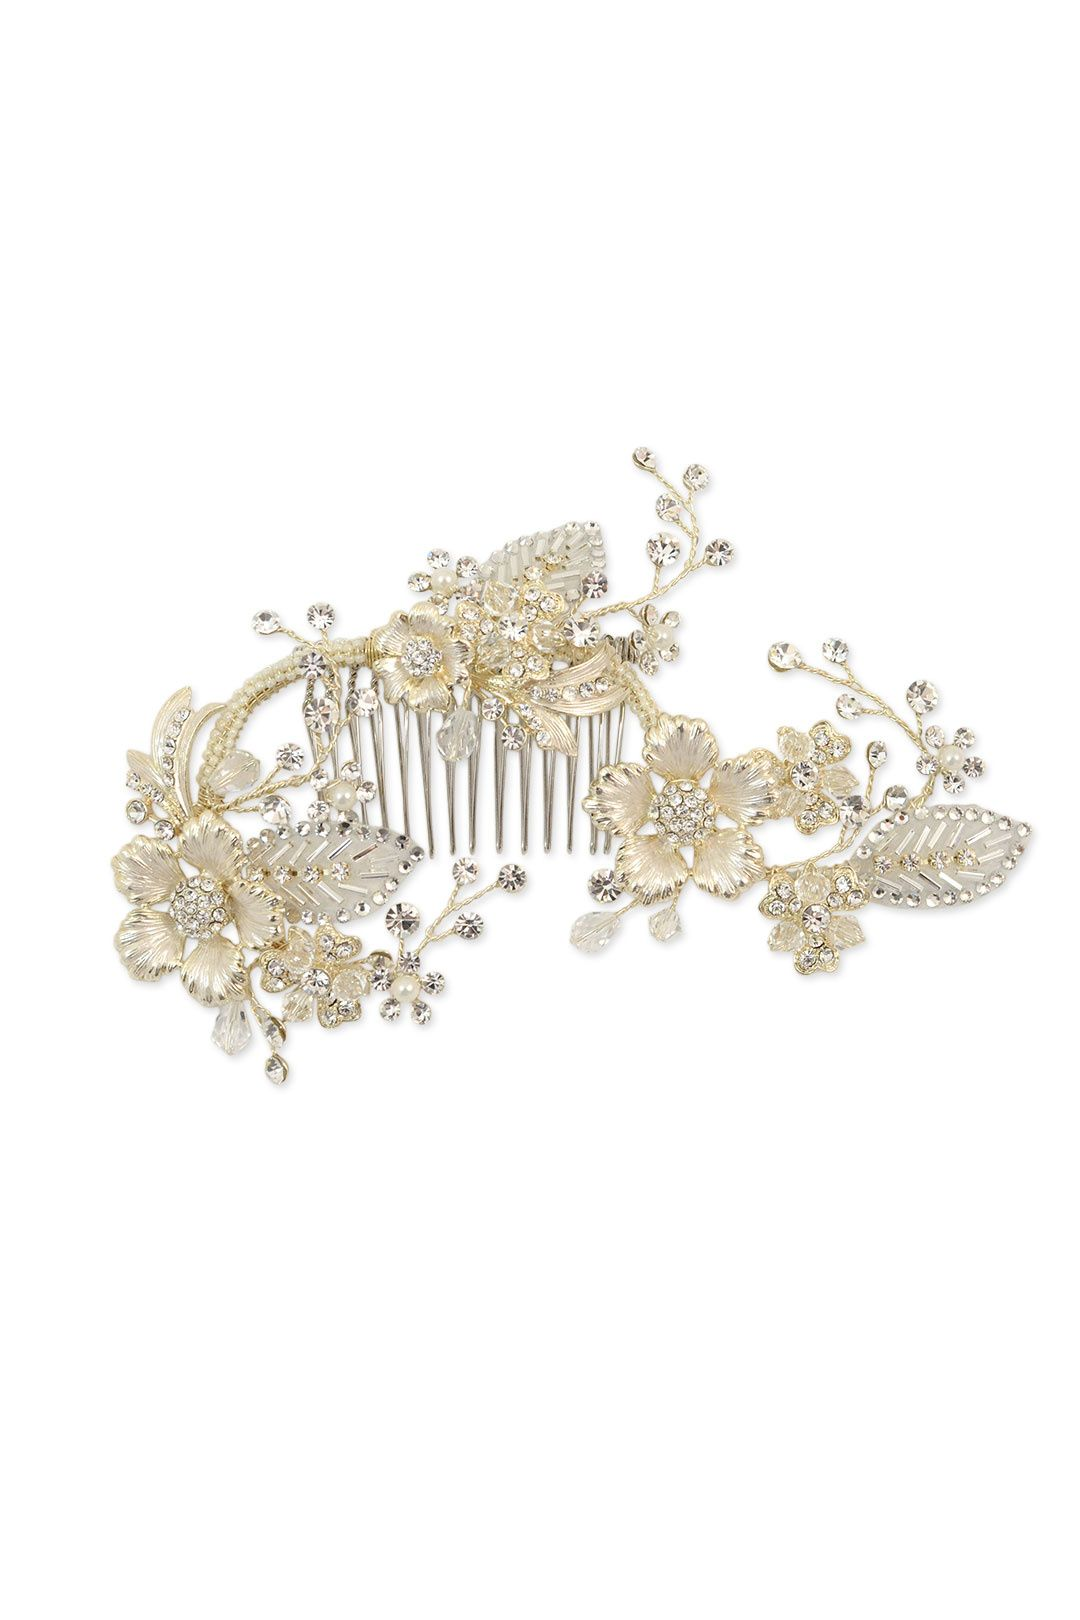 rent budding romance comb by rtr bridal accessories for $25